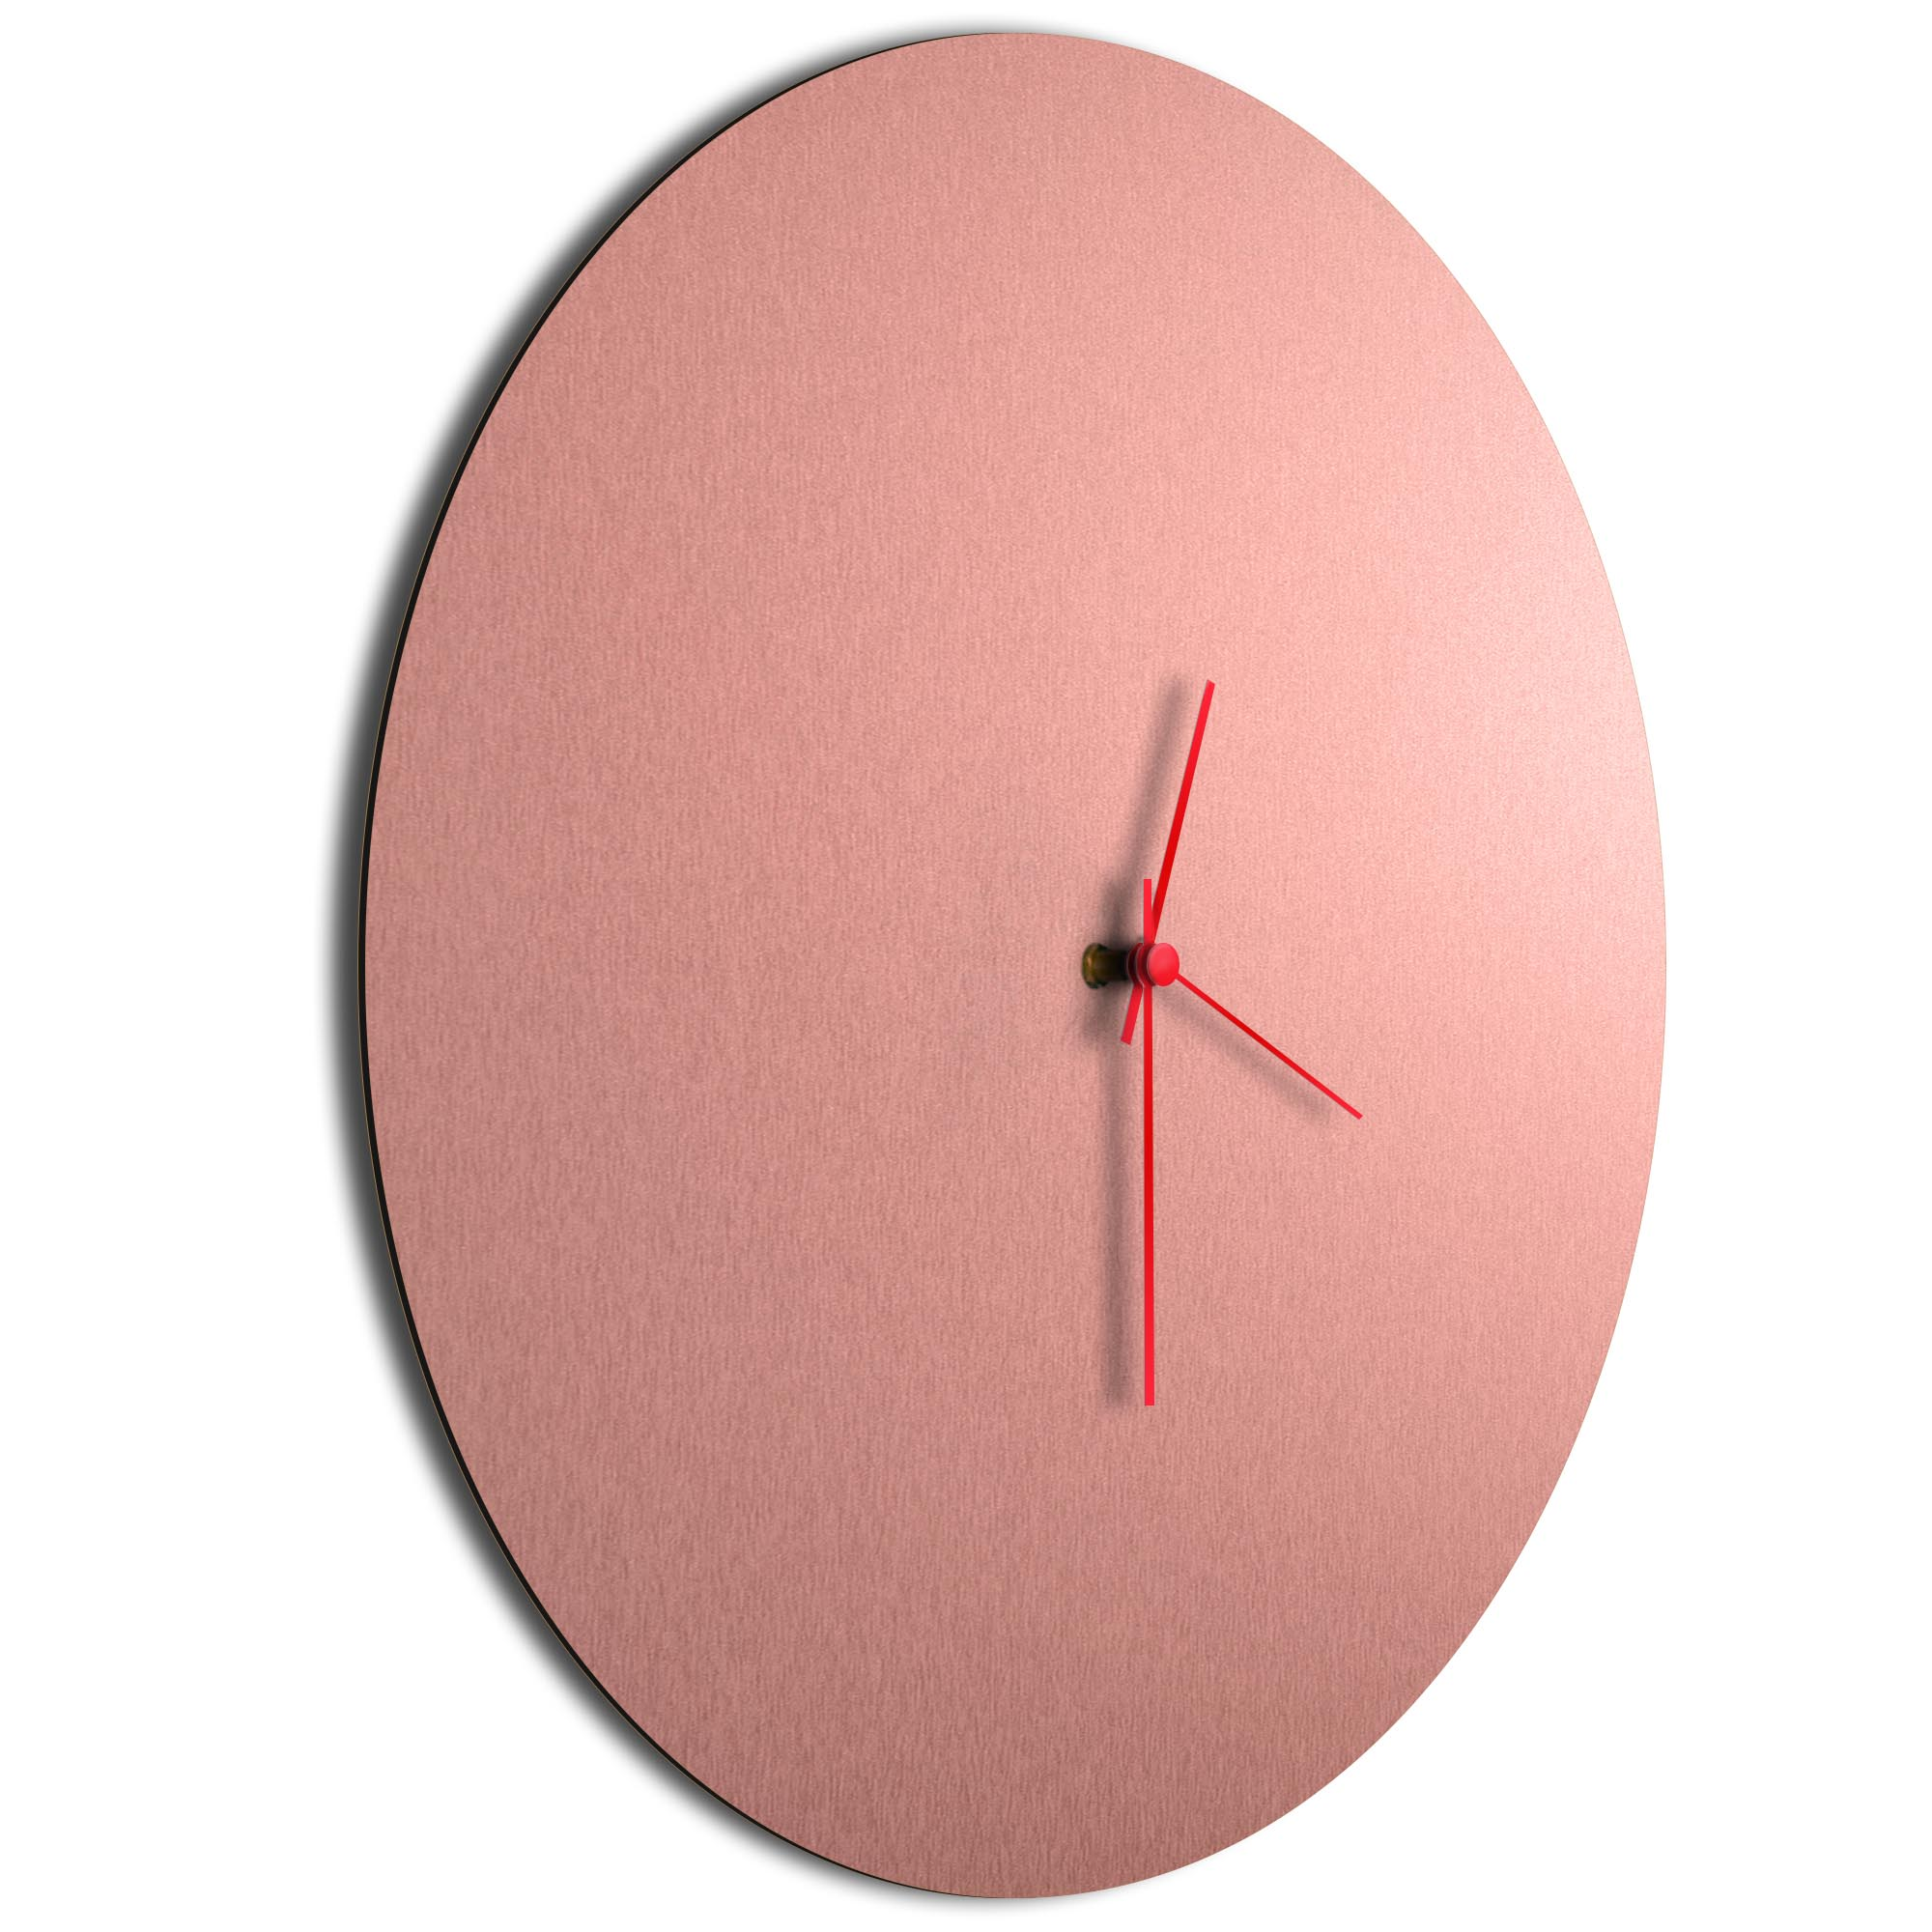 Coppersmith Circle Clock Red - Image 2